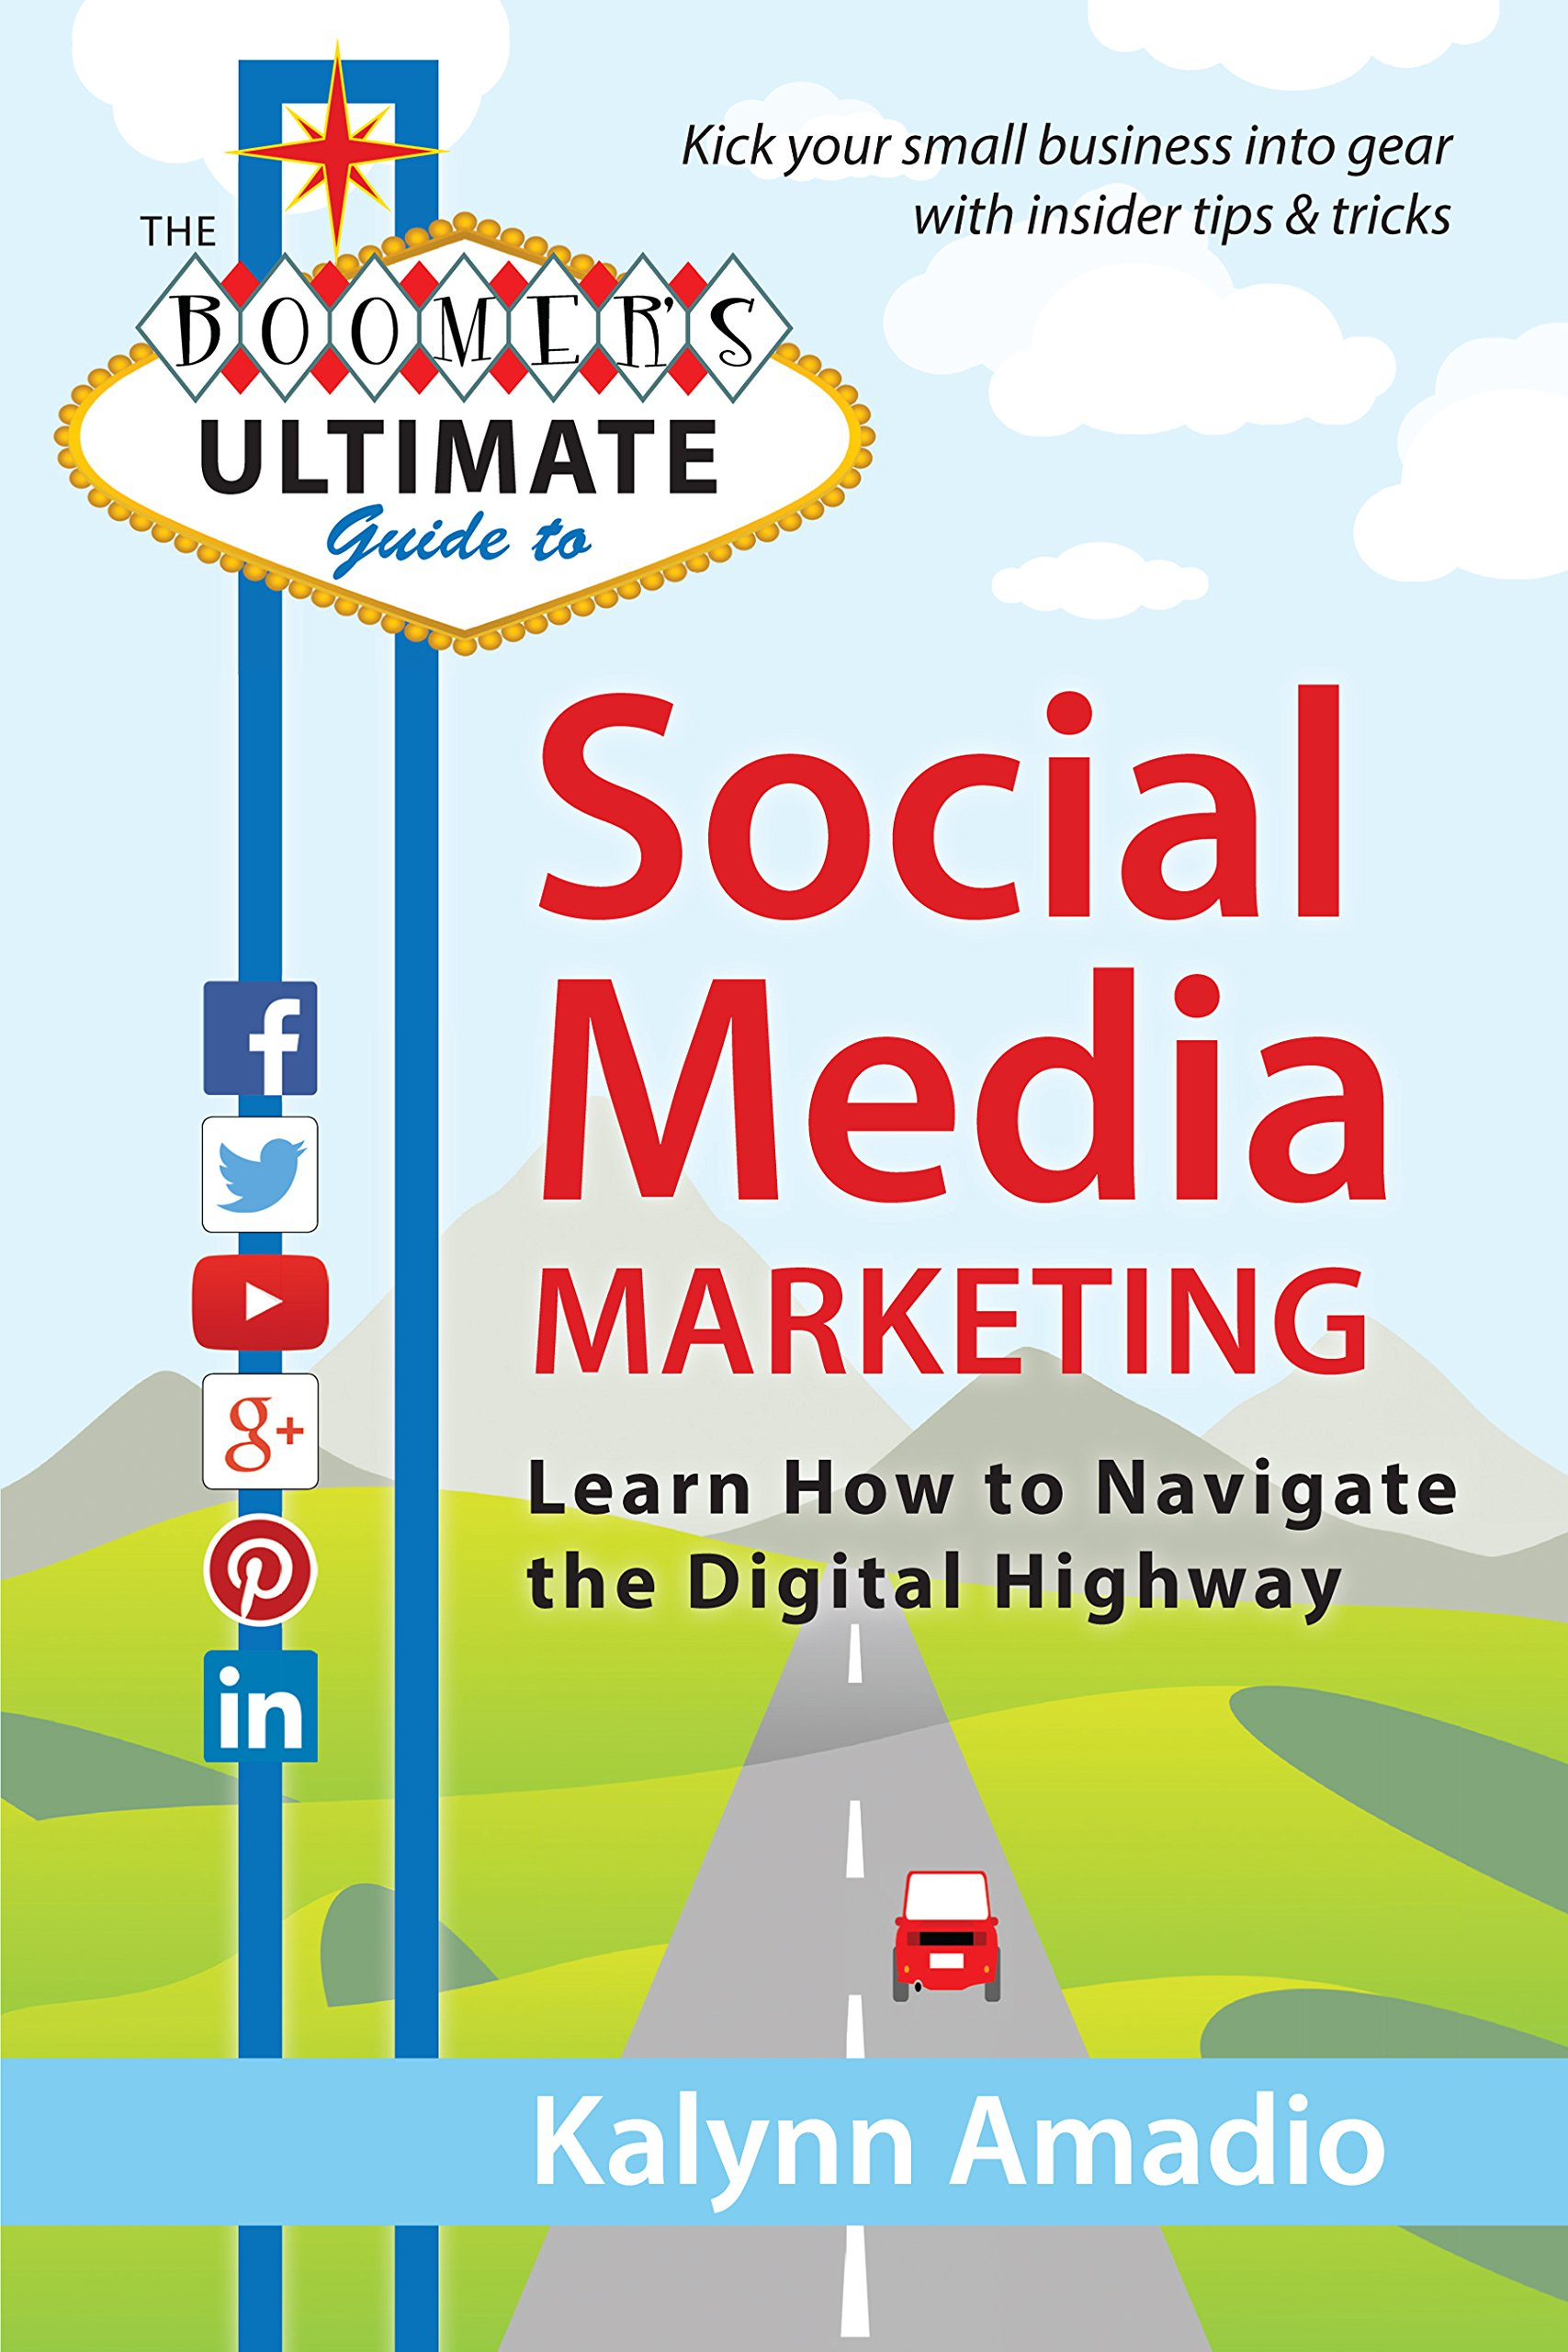 Image OfThe Boomer's Ultimate Guide To Social Media Marketing: Learn How To Navigate The Digital Highway (English Edition)